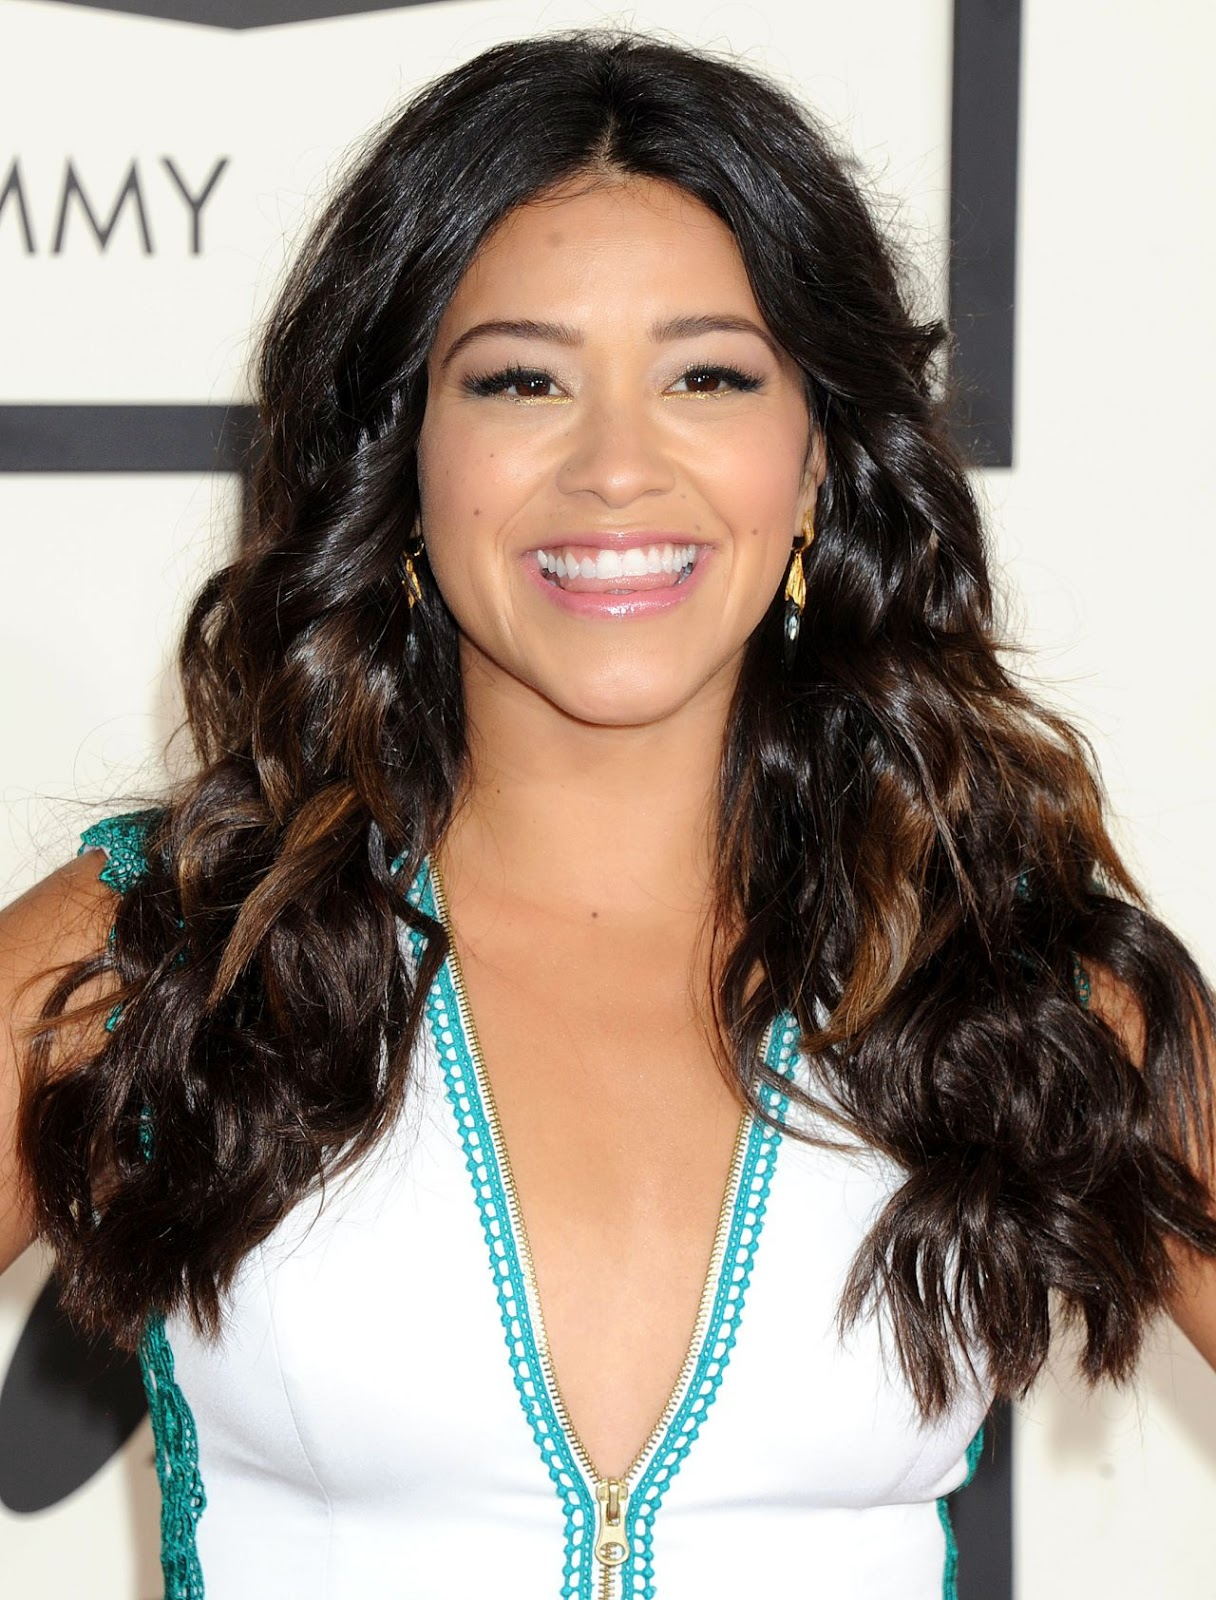 Gina Rodriguez is gorgeous in a white and teal gown at the 2015 Grammy Awards in LA